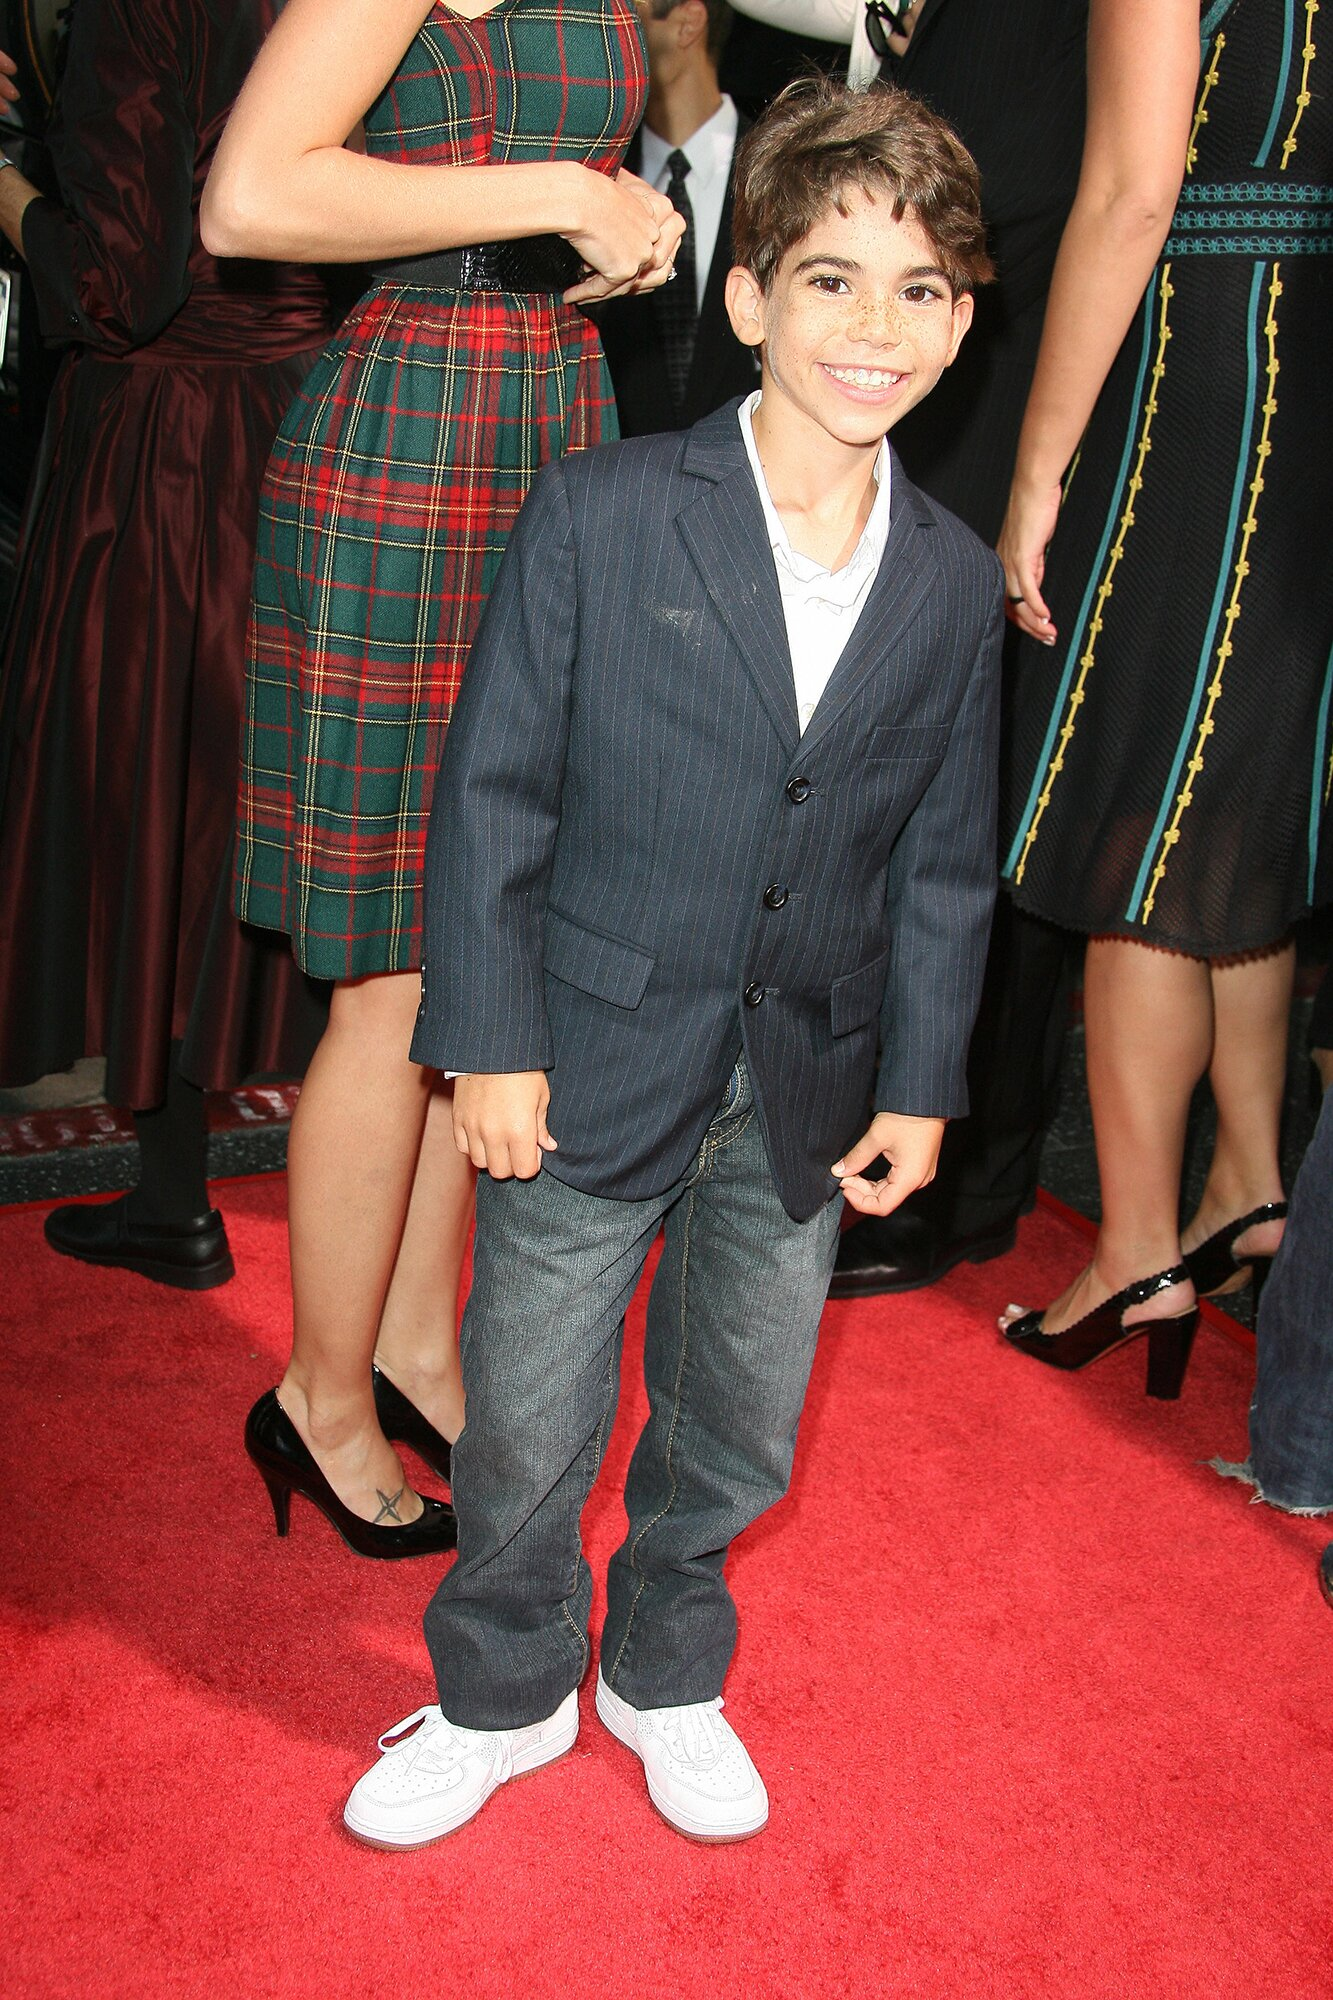 Cameron Boyce S Life In Photos People Com